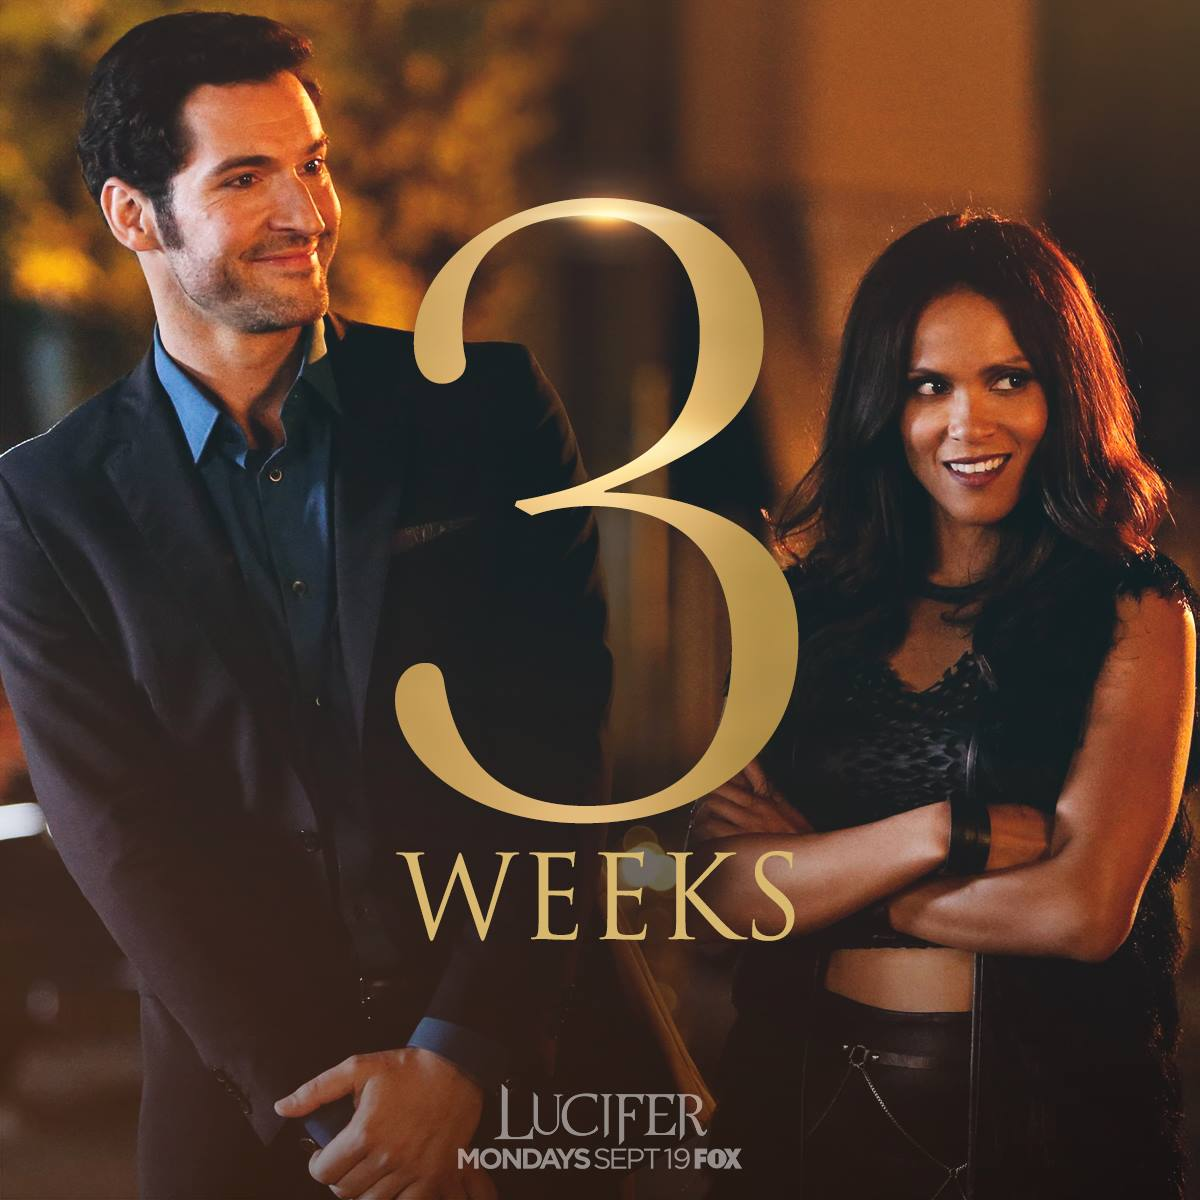 Only 3 weeks until #LuciferSeason2 - September 19th - FOX.  #Lucifer https://t.co/4cwxwSDdZa